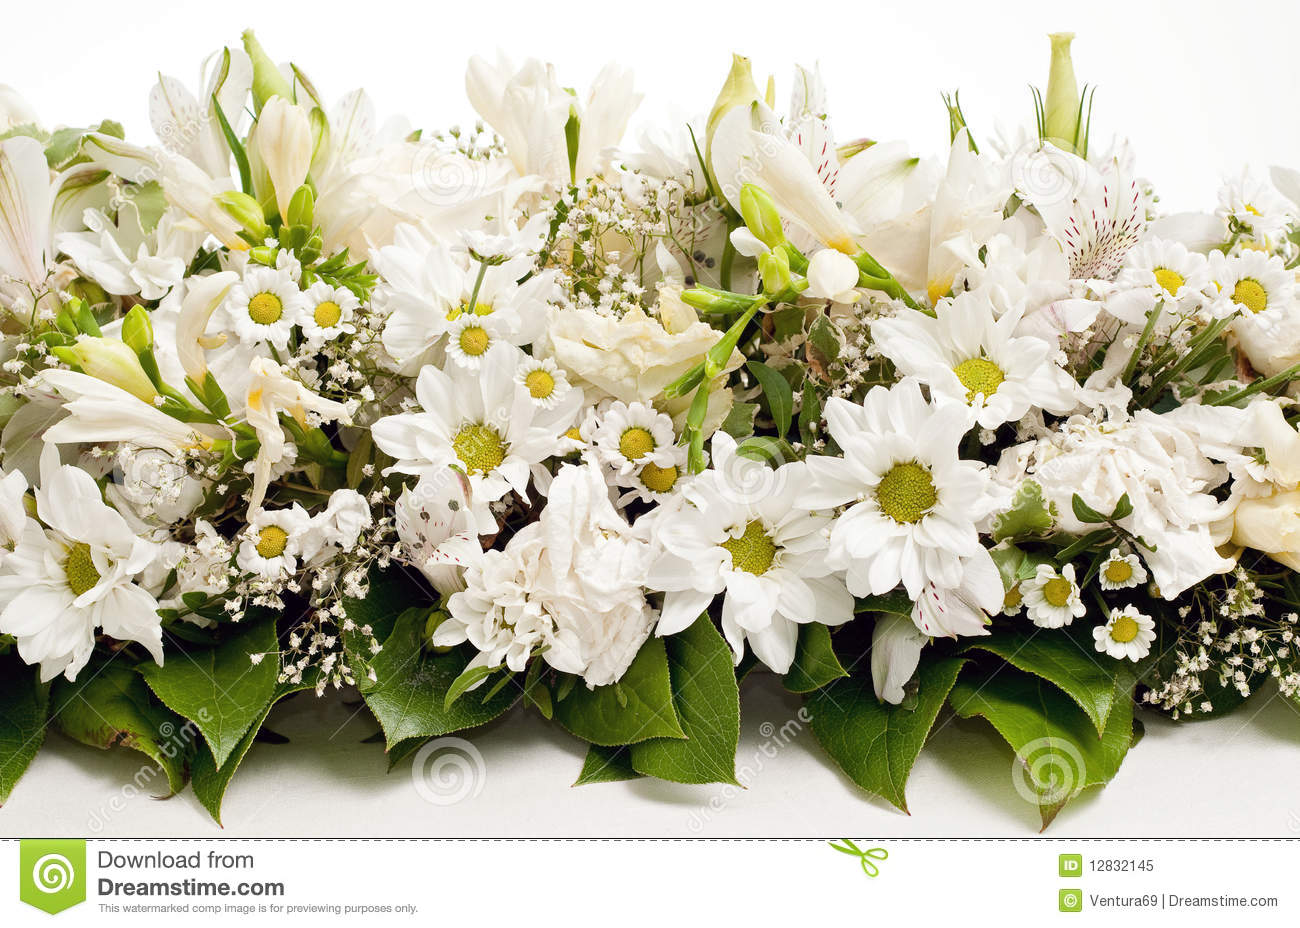 White Flowers Decorations 27 Hd Wallpaper - HdFlowerWallpaper.com